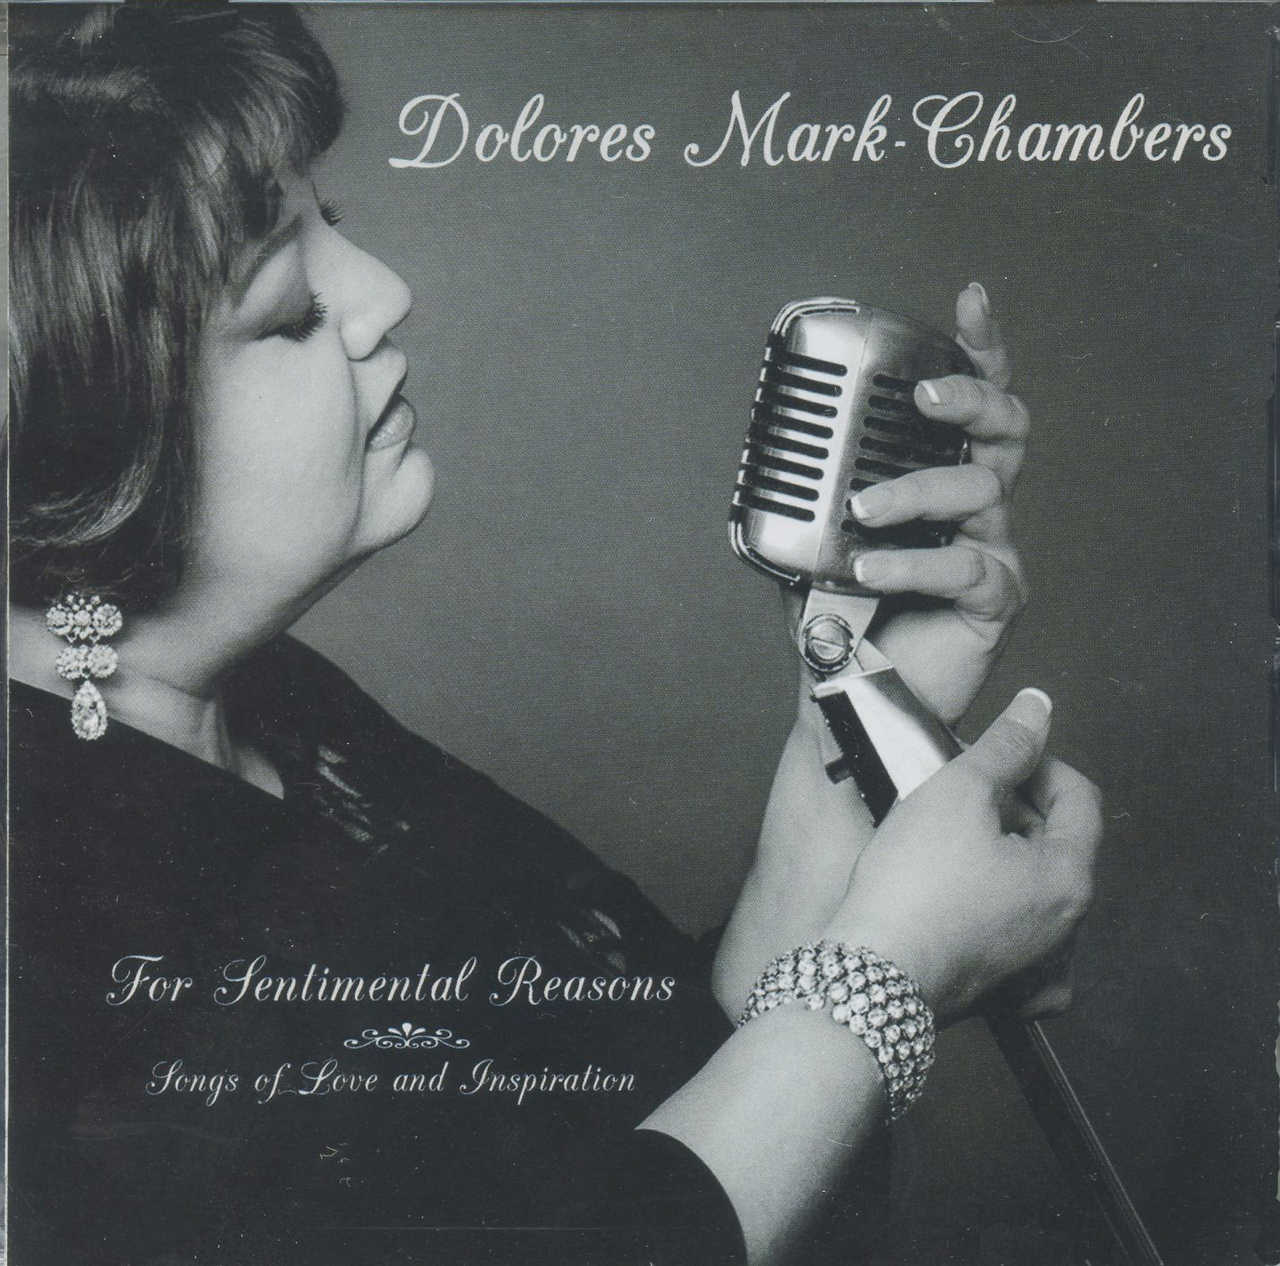 For sentimental reasons by dolores mark chambers